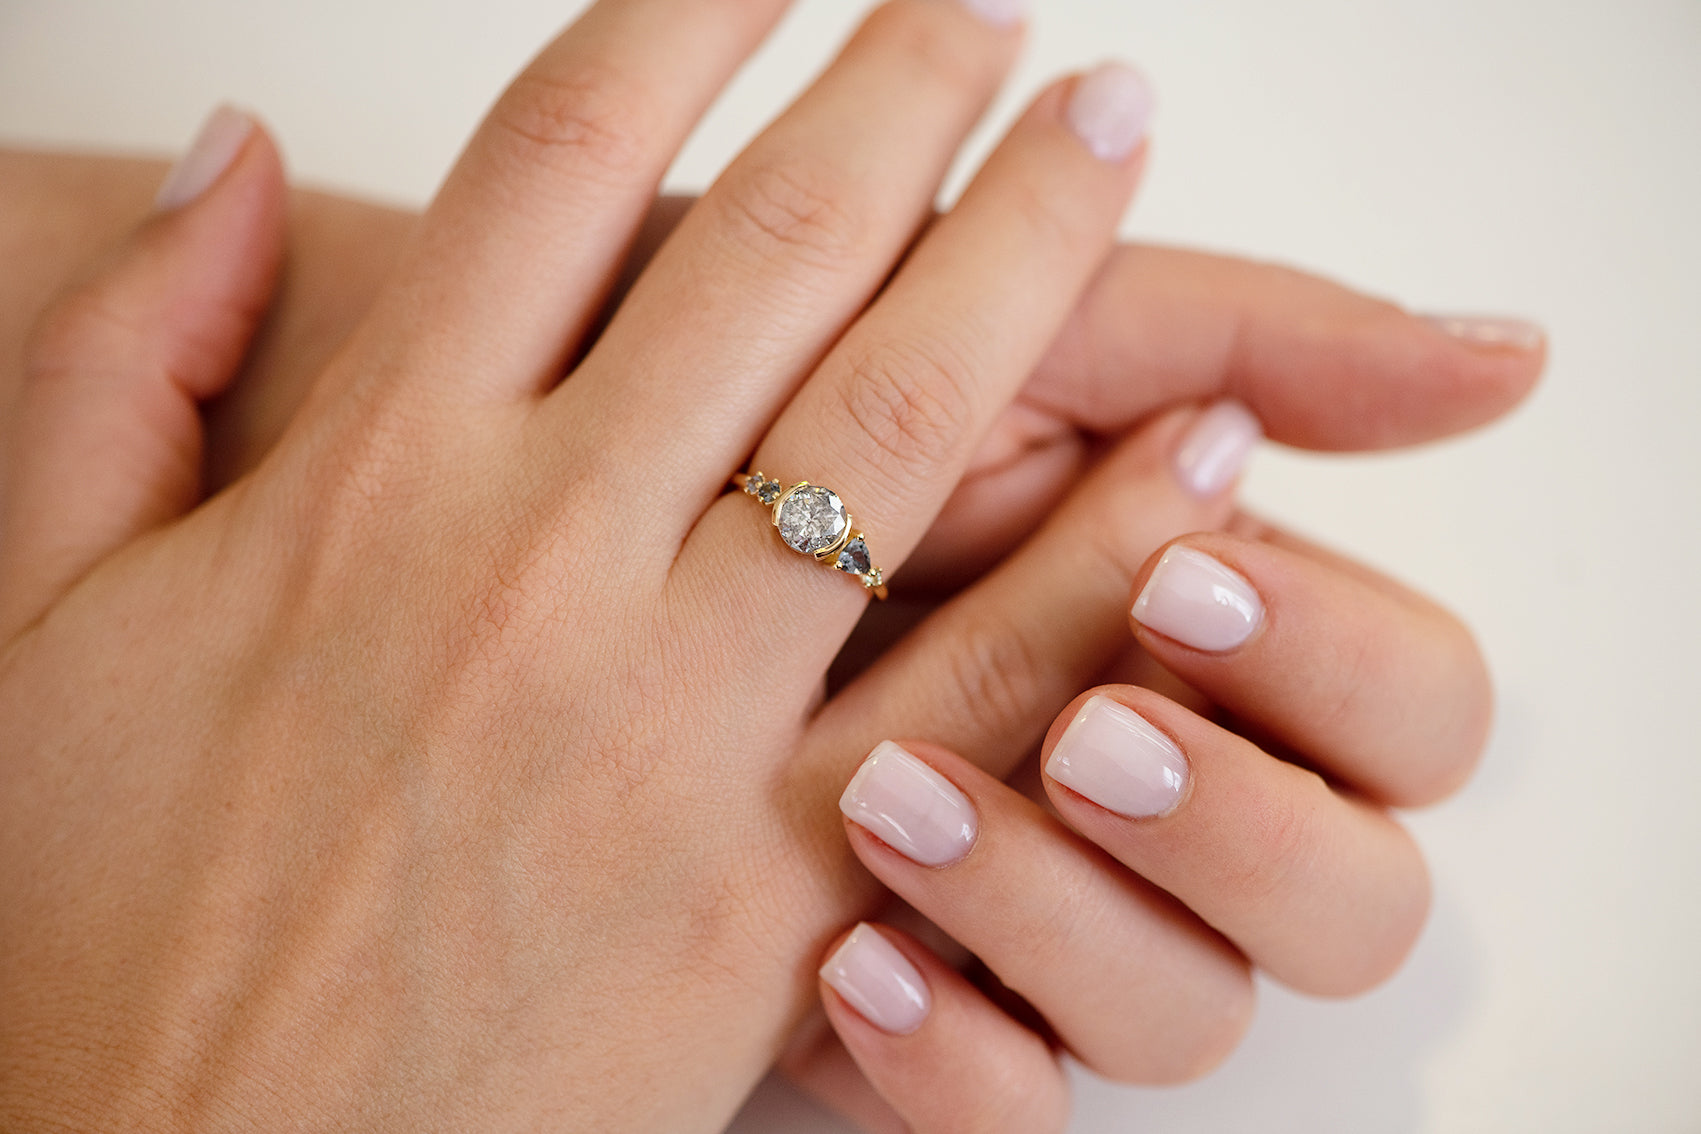 Sapphire und Diamond Engagement Ring in Teal und Grey auf Hands